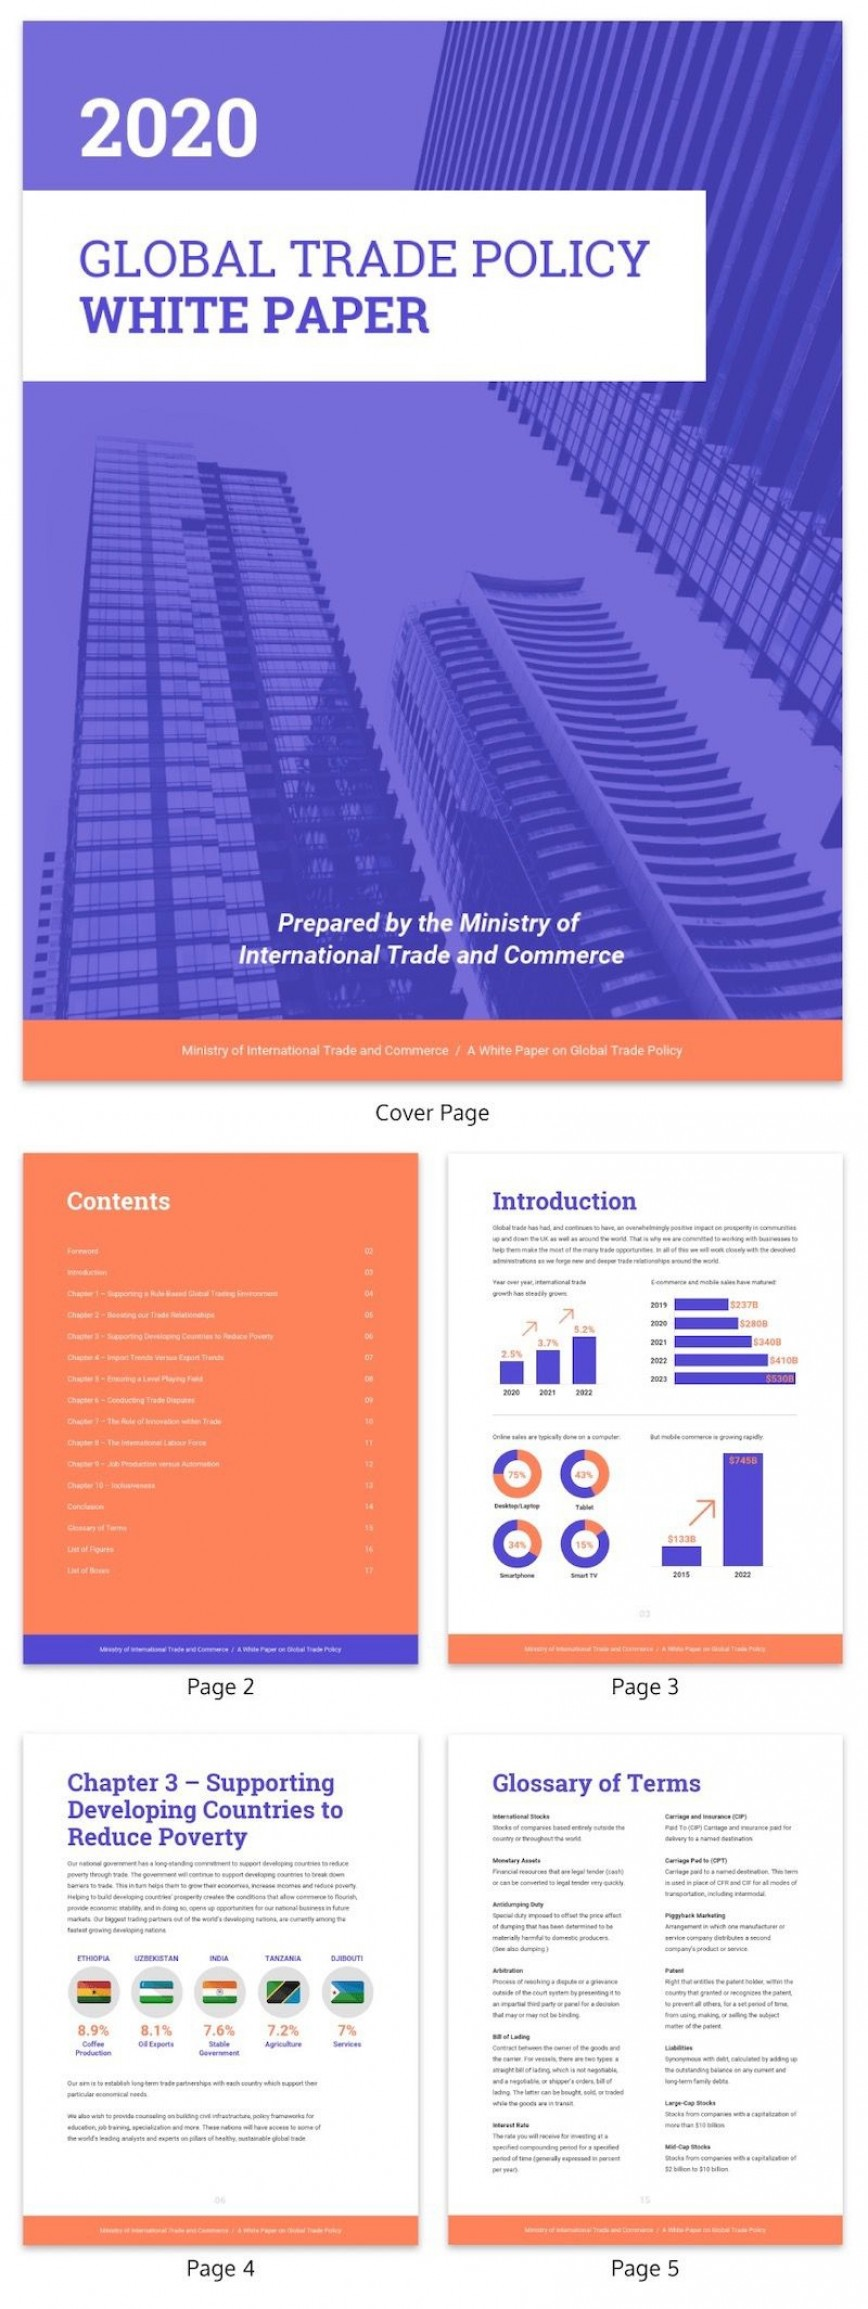 005 Unusual Technical White Paper Template Sample  Word Doc Free Download 2013868